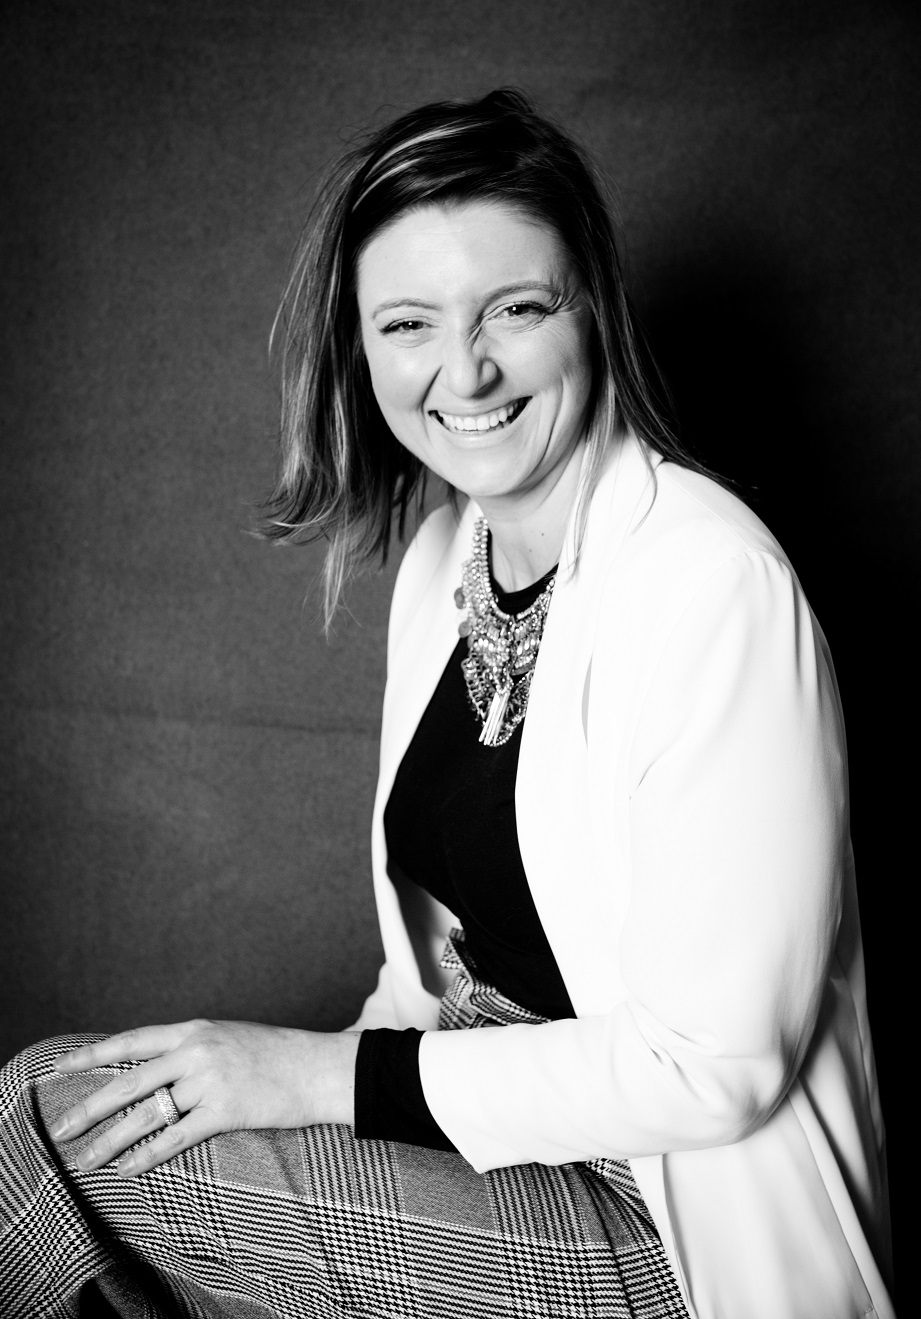 Tracy James has significant experience in Leadership and people development in the IT and marketing sector.